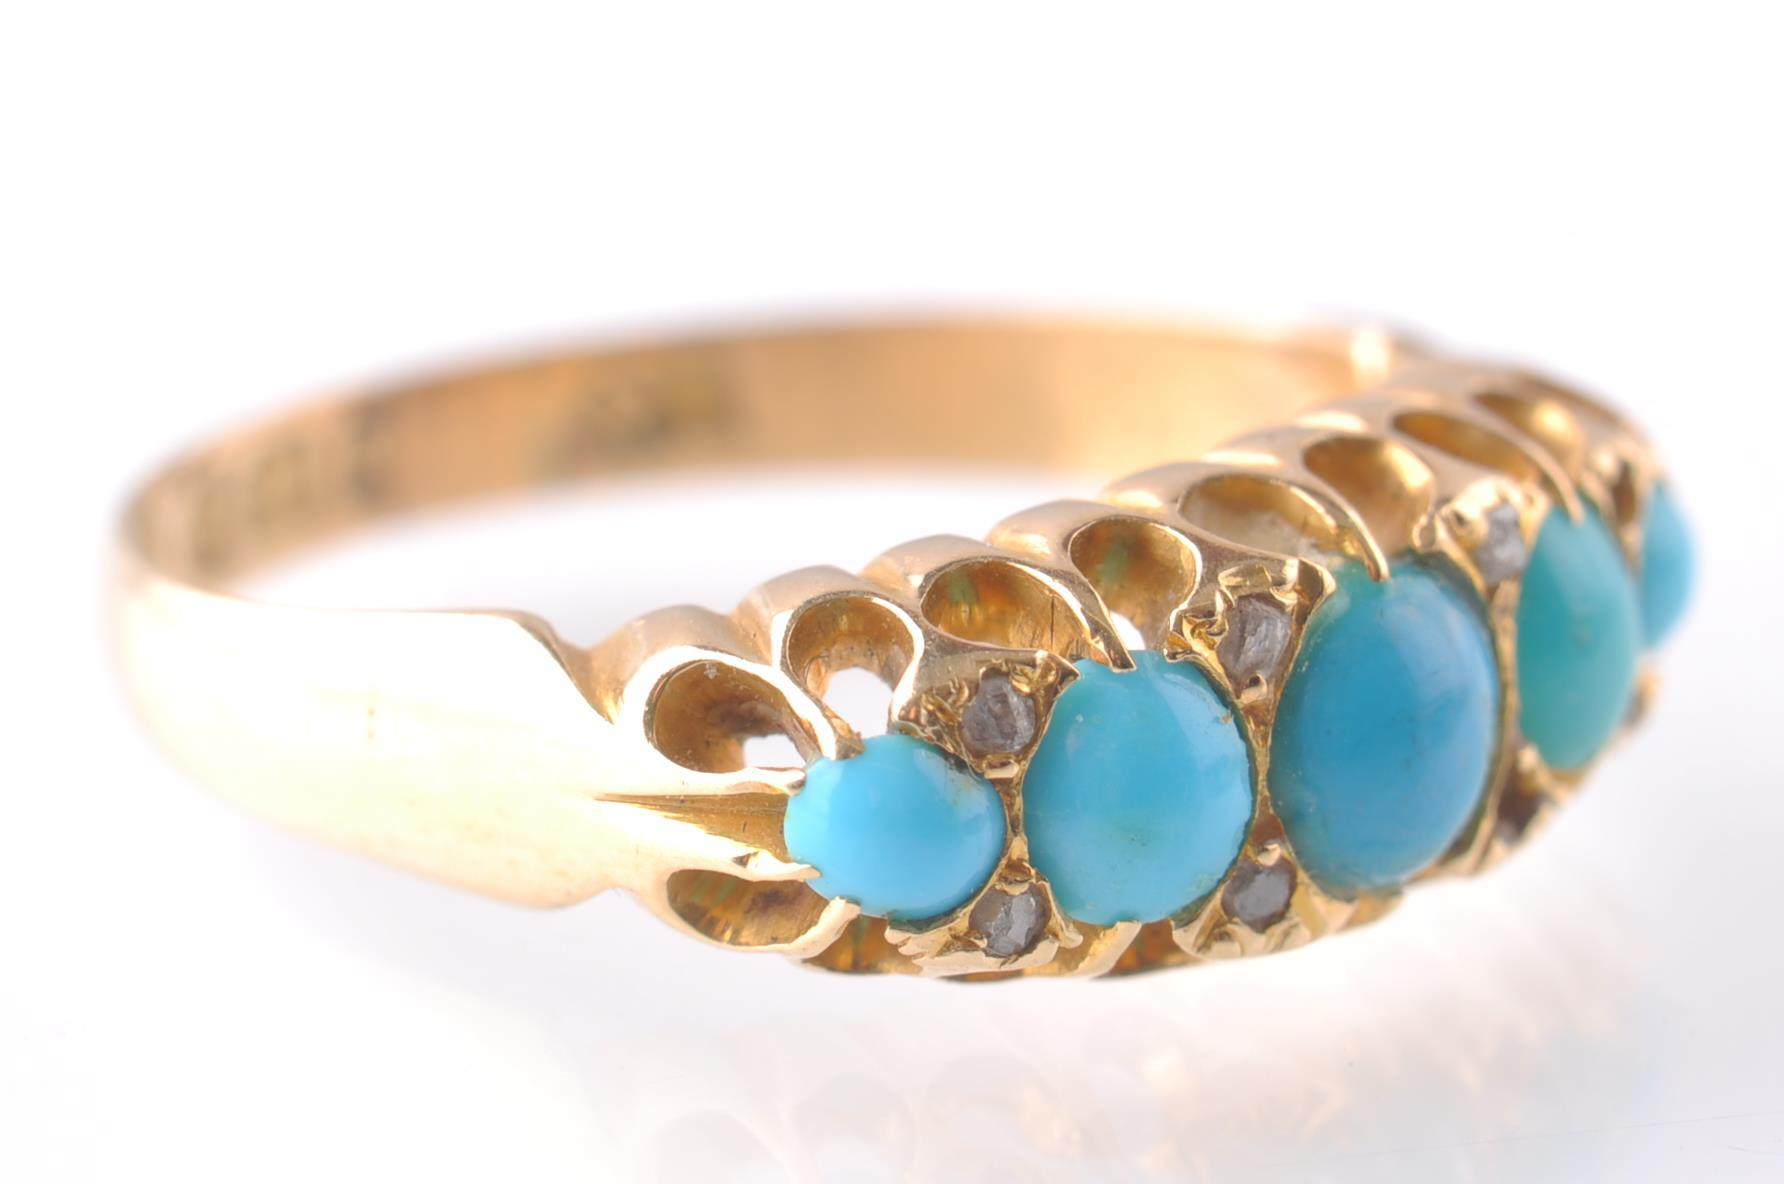 An 18CT GOLD & TURQUOISE GYPSY RING - 1915 - Image 3 of 4